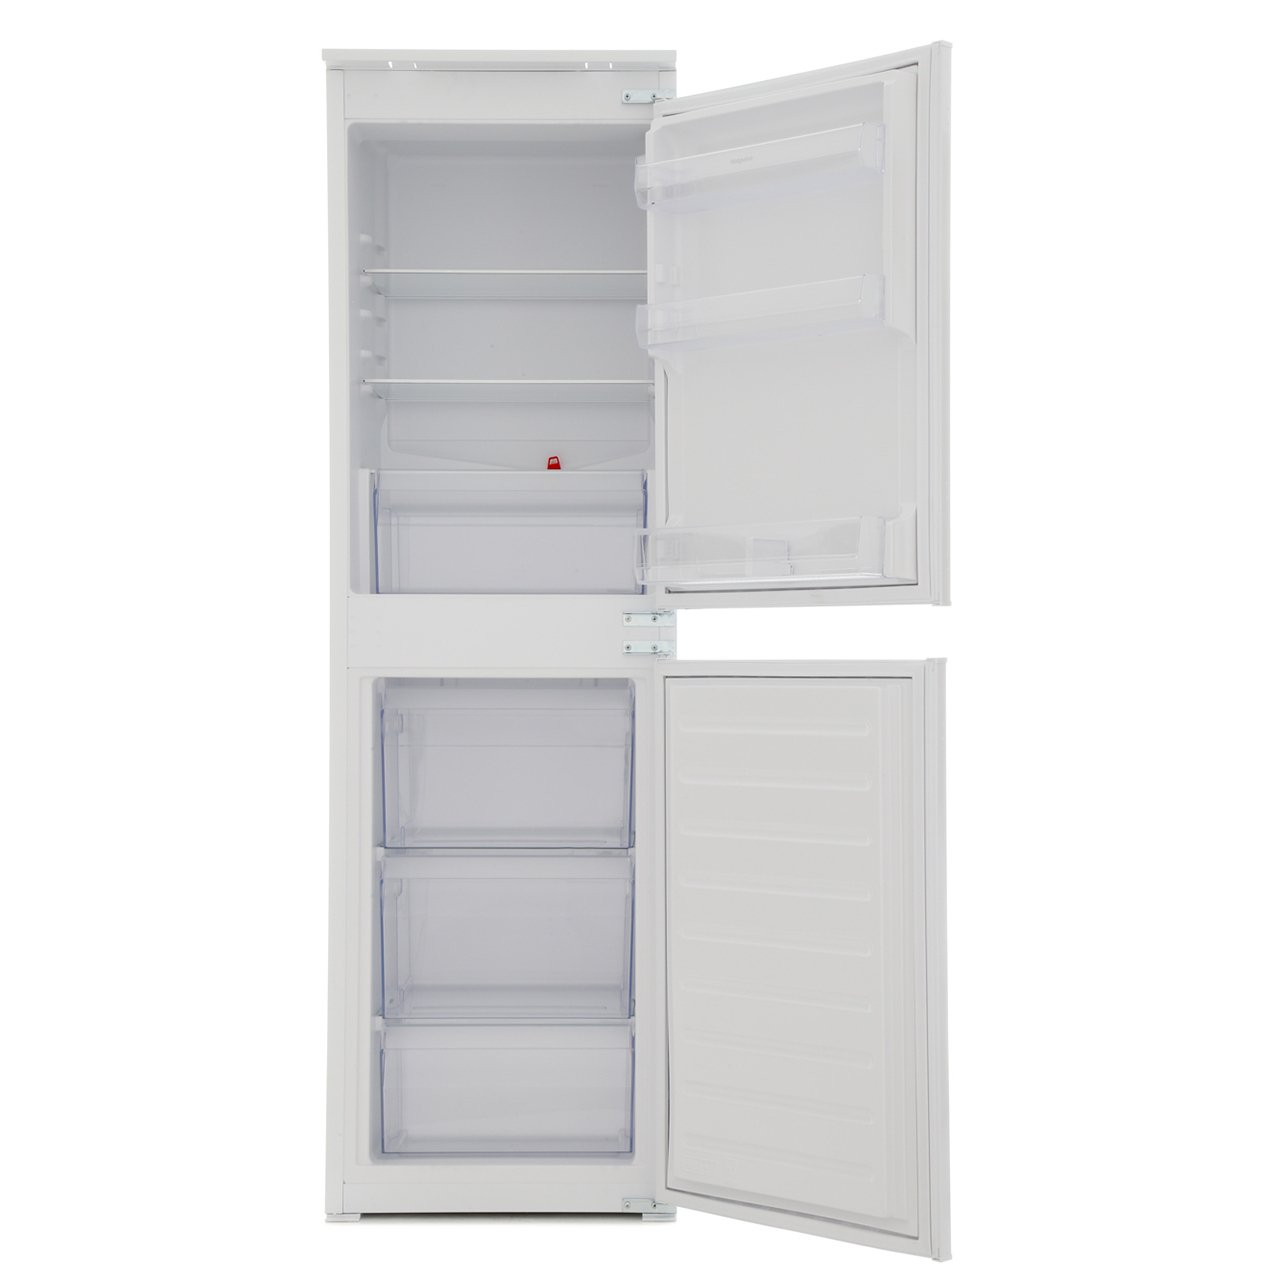 Hotpoint HMCB5050AA Low Frost Integrated Fridge Freezer